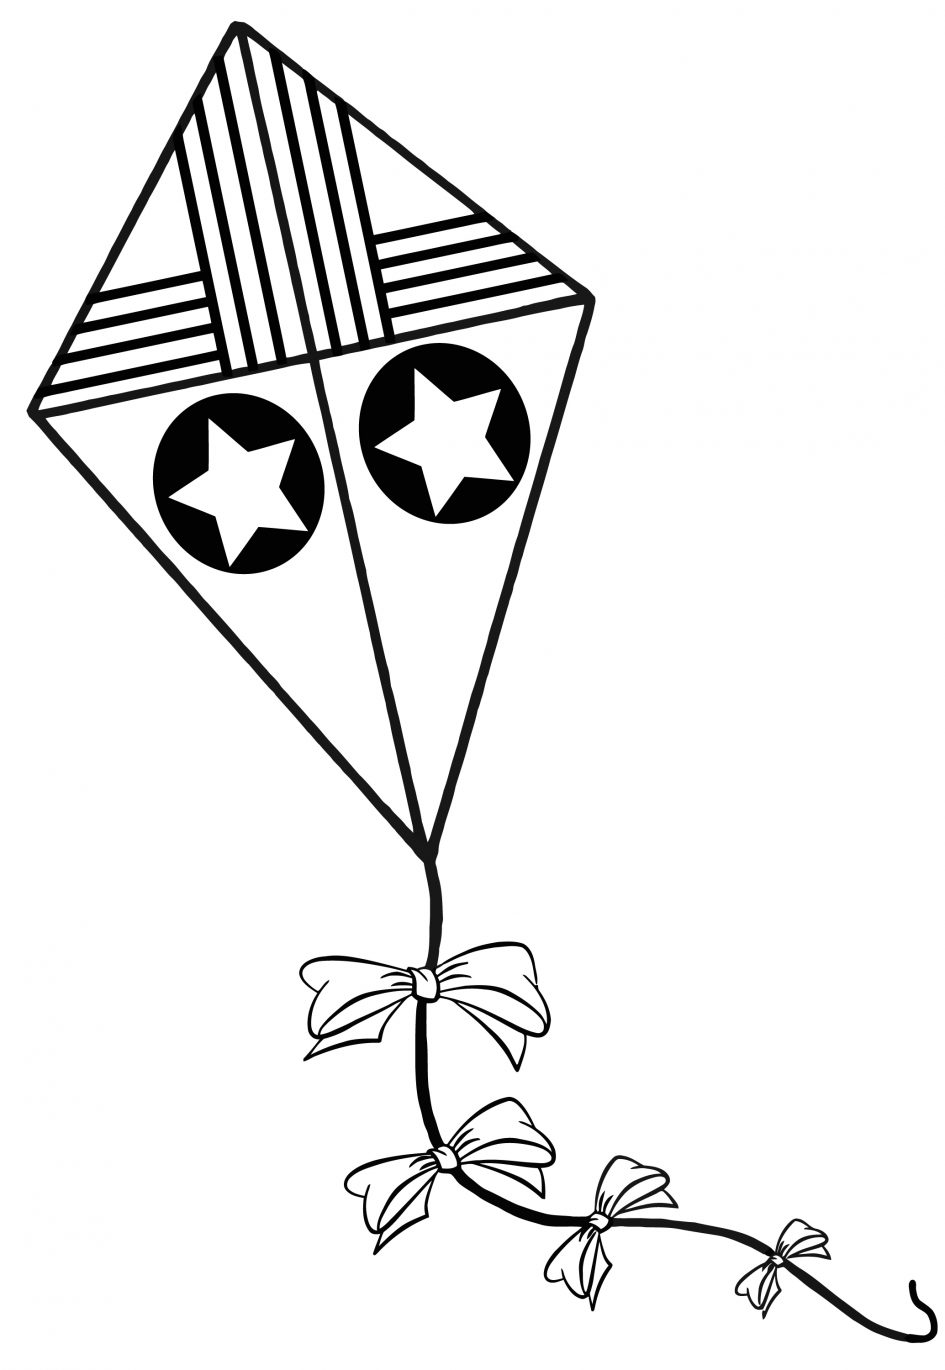 coloring kite black and white printable kite coloring pages for kids cool2bkids kite white coloring and black